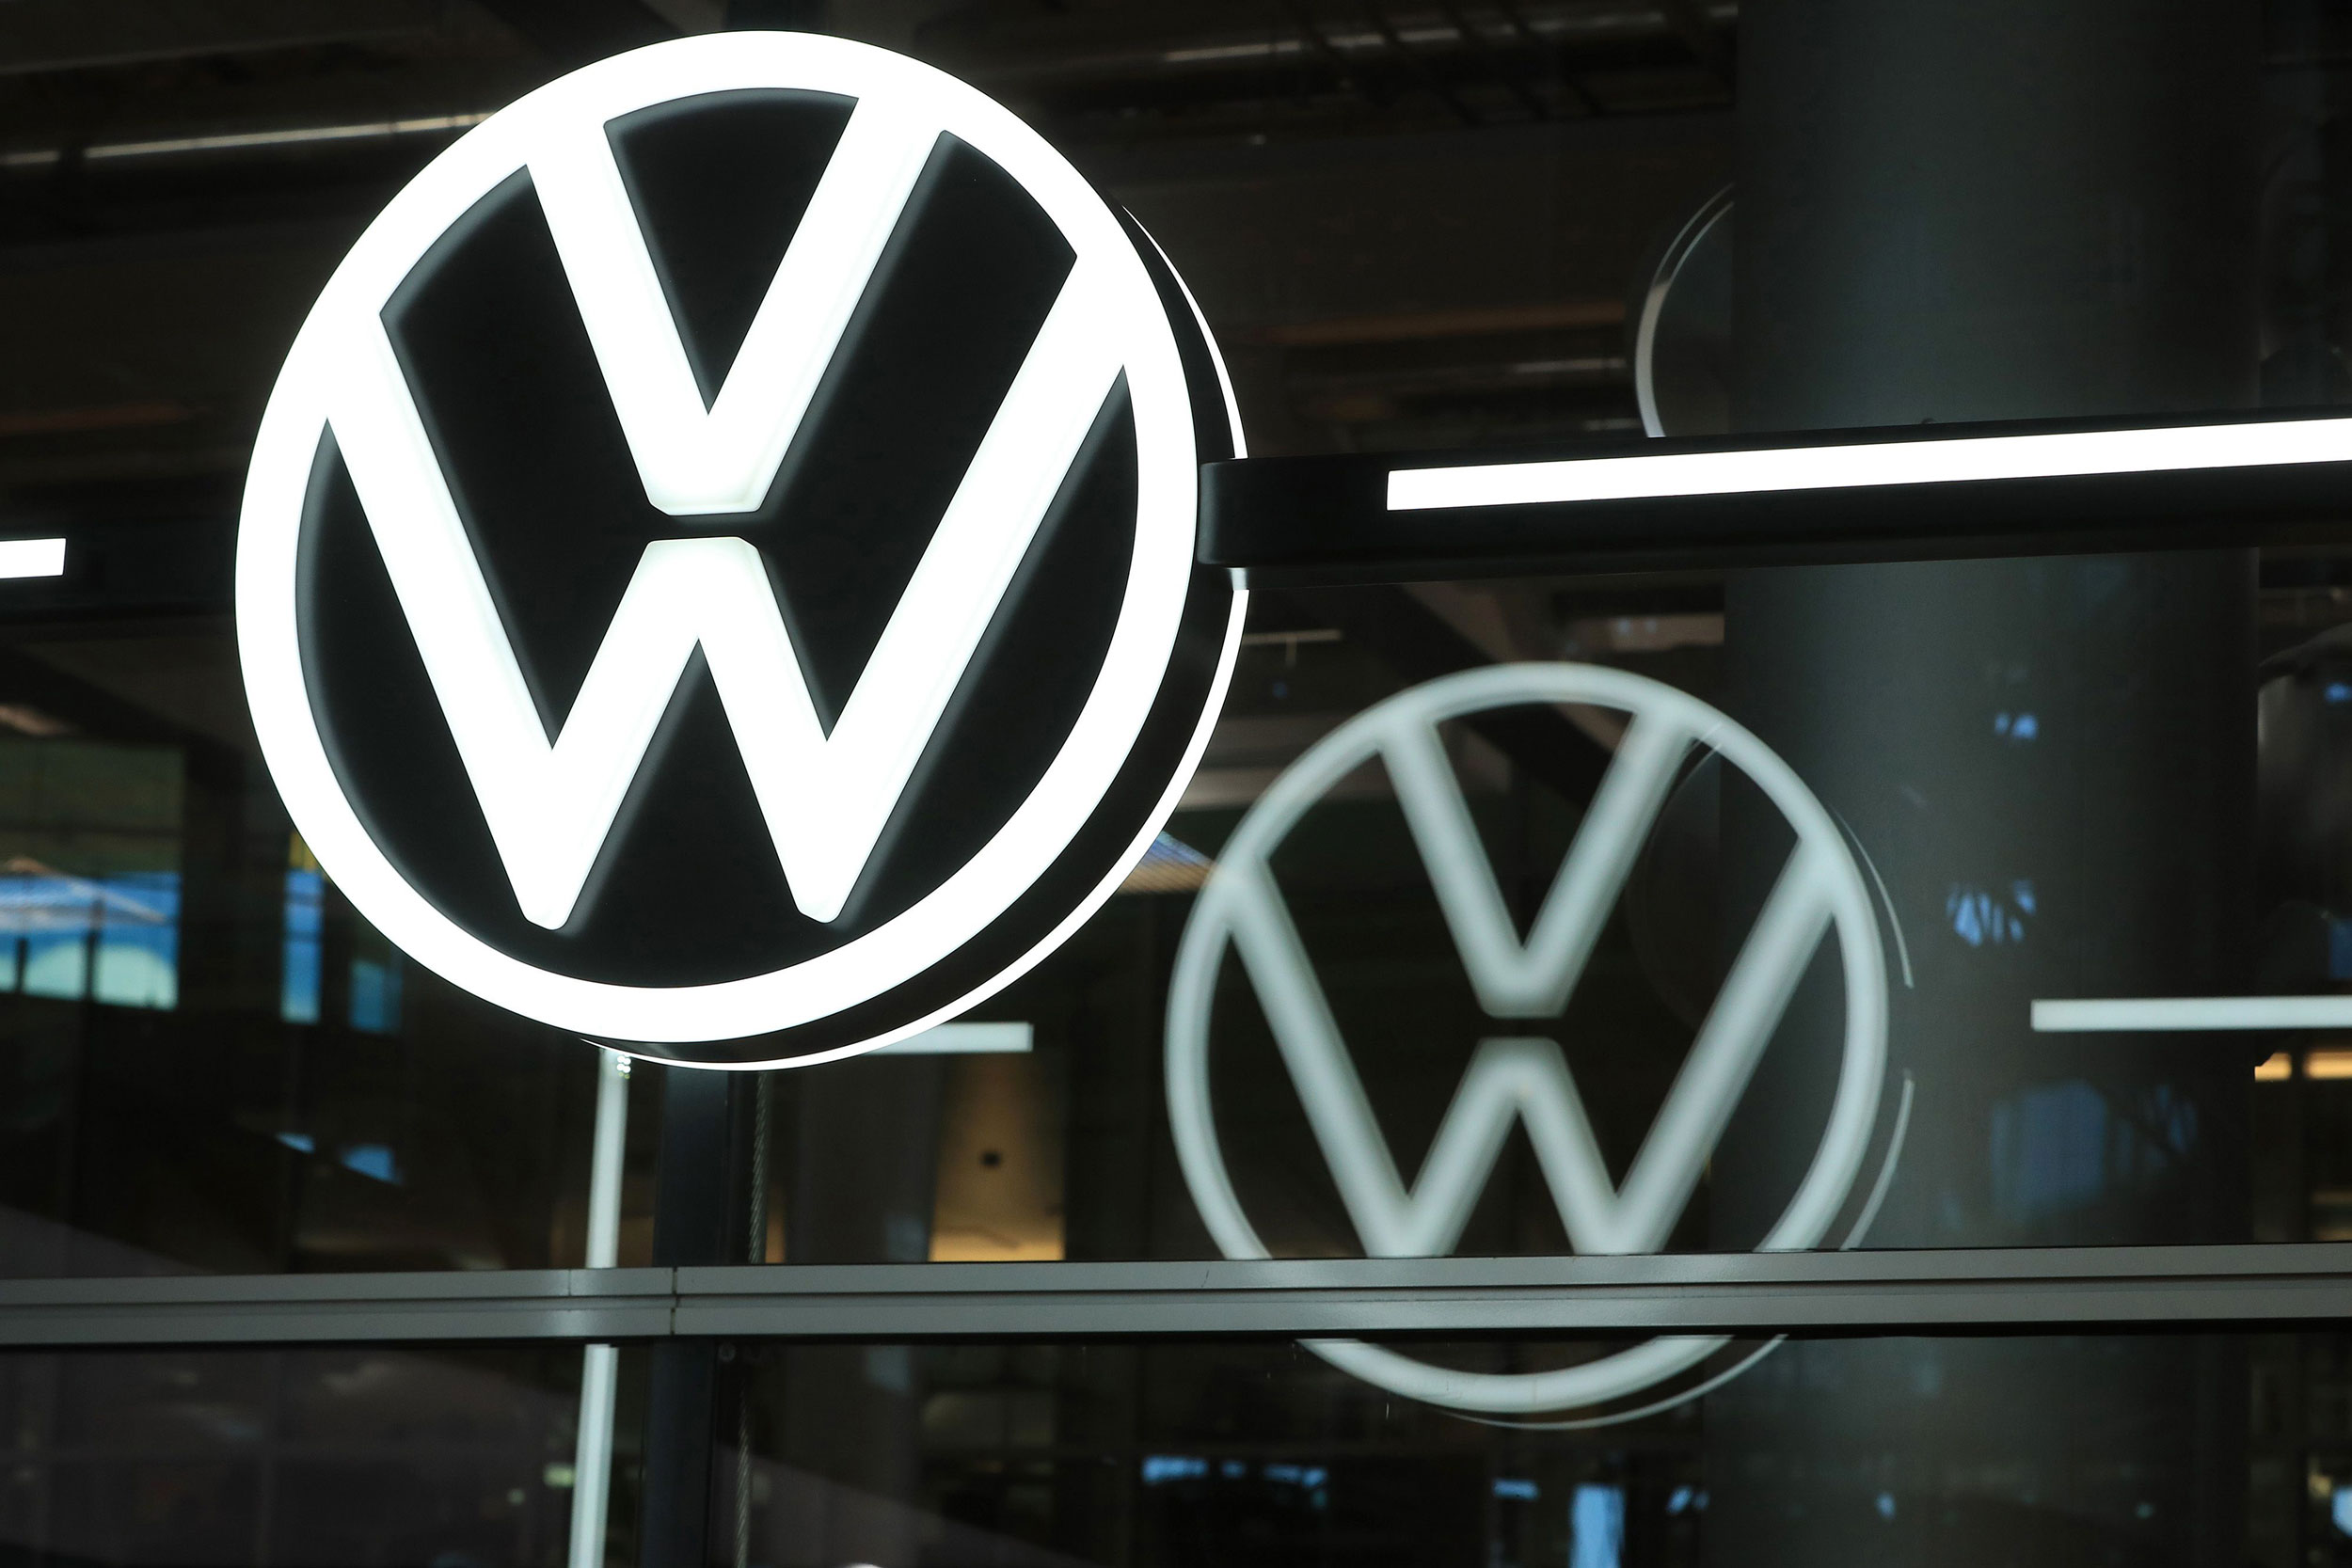 VW to revamp marketing controls after uproar over racist video